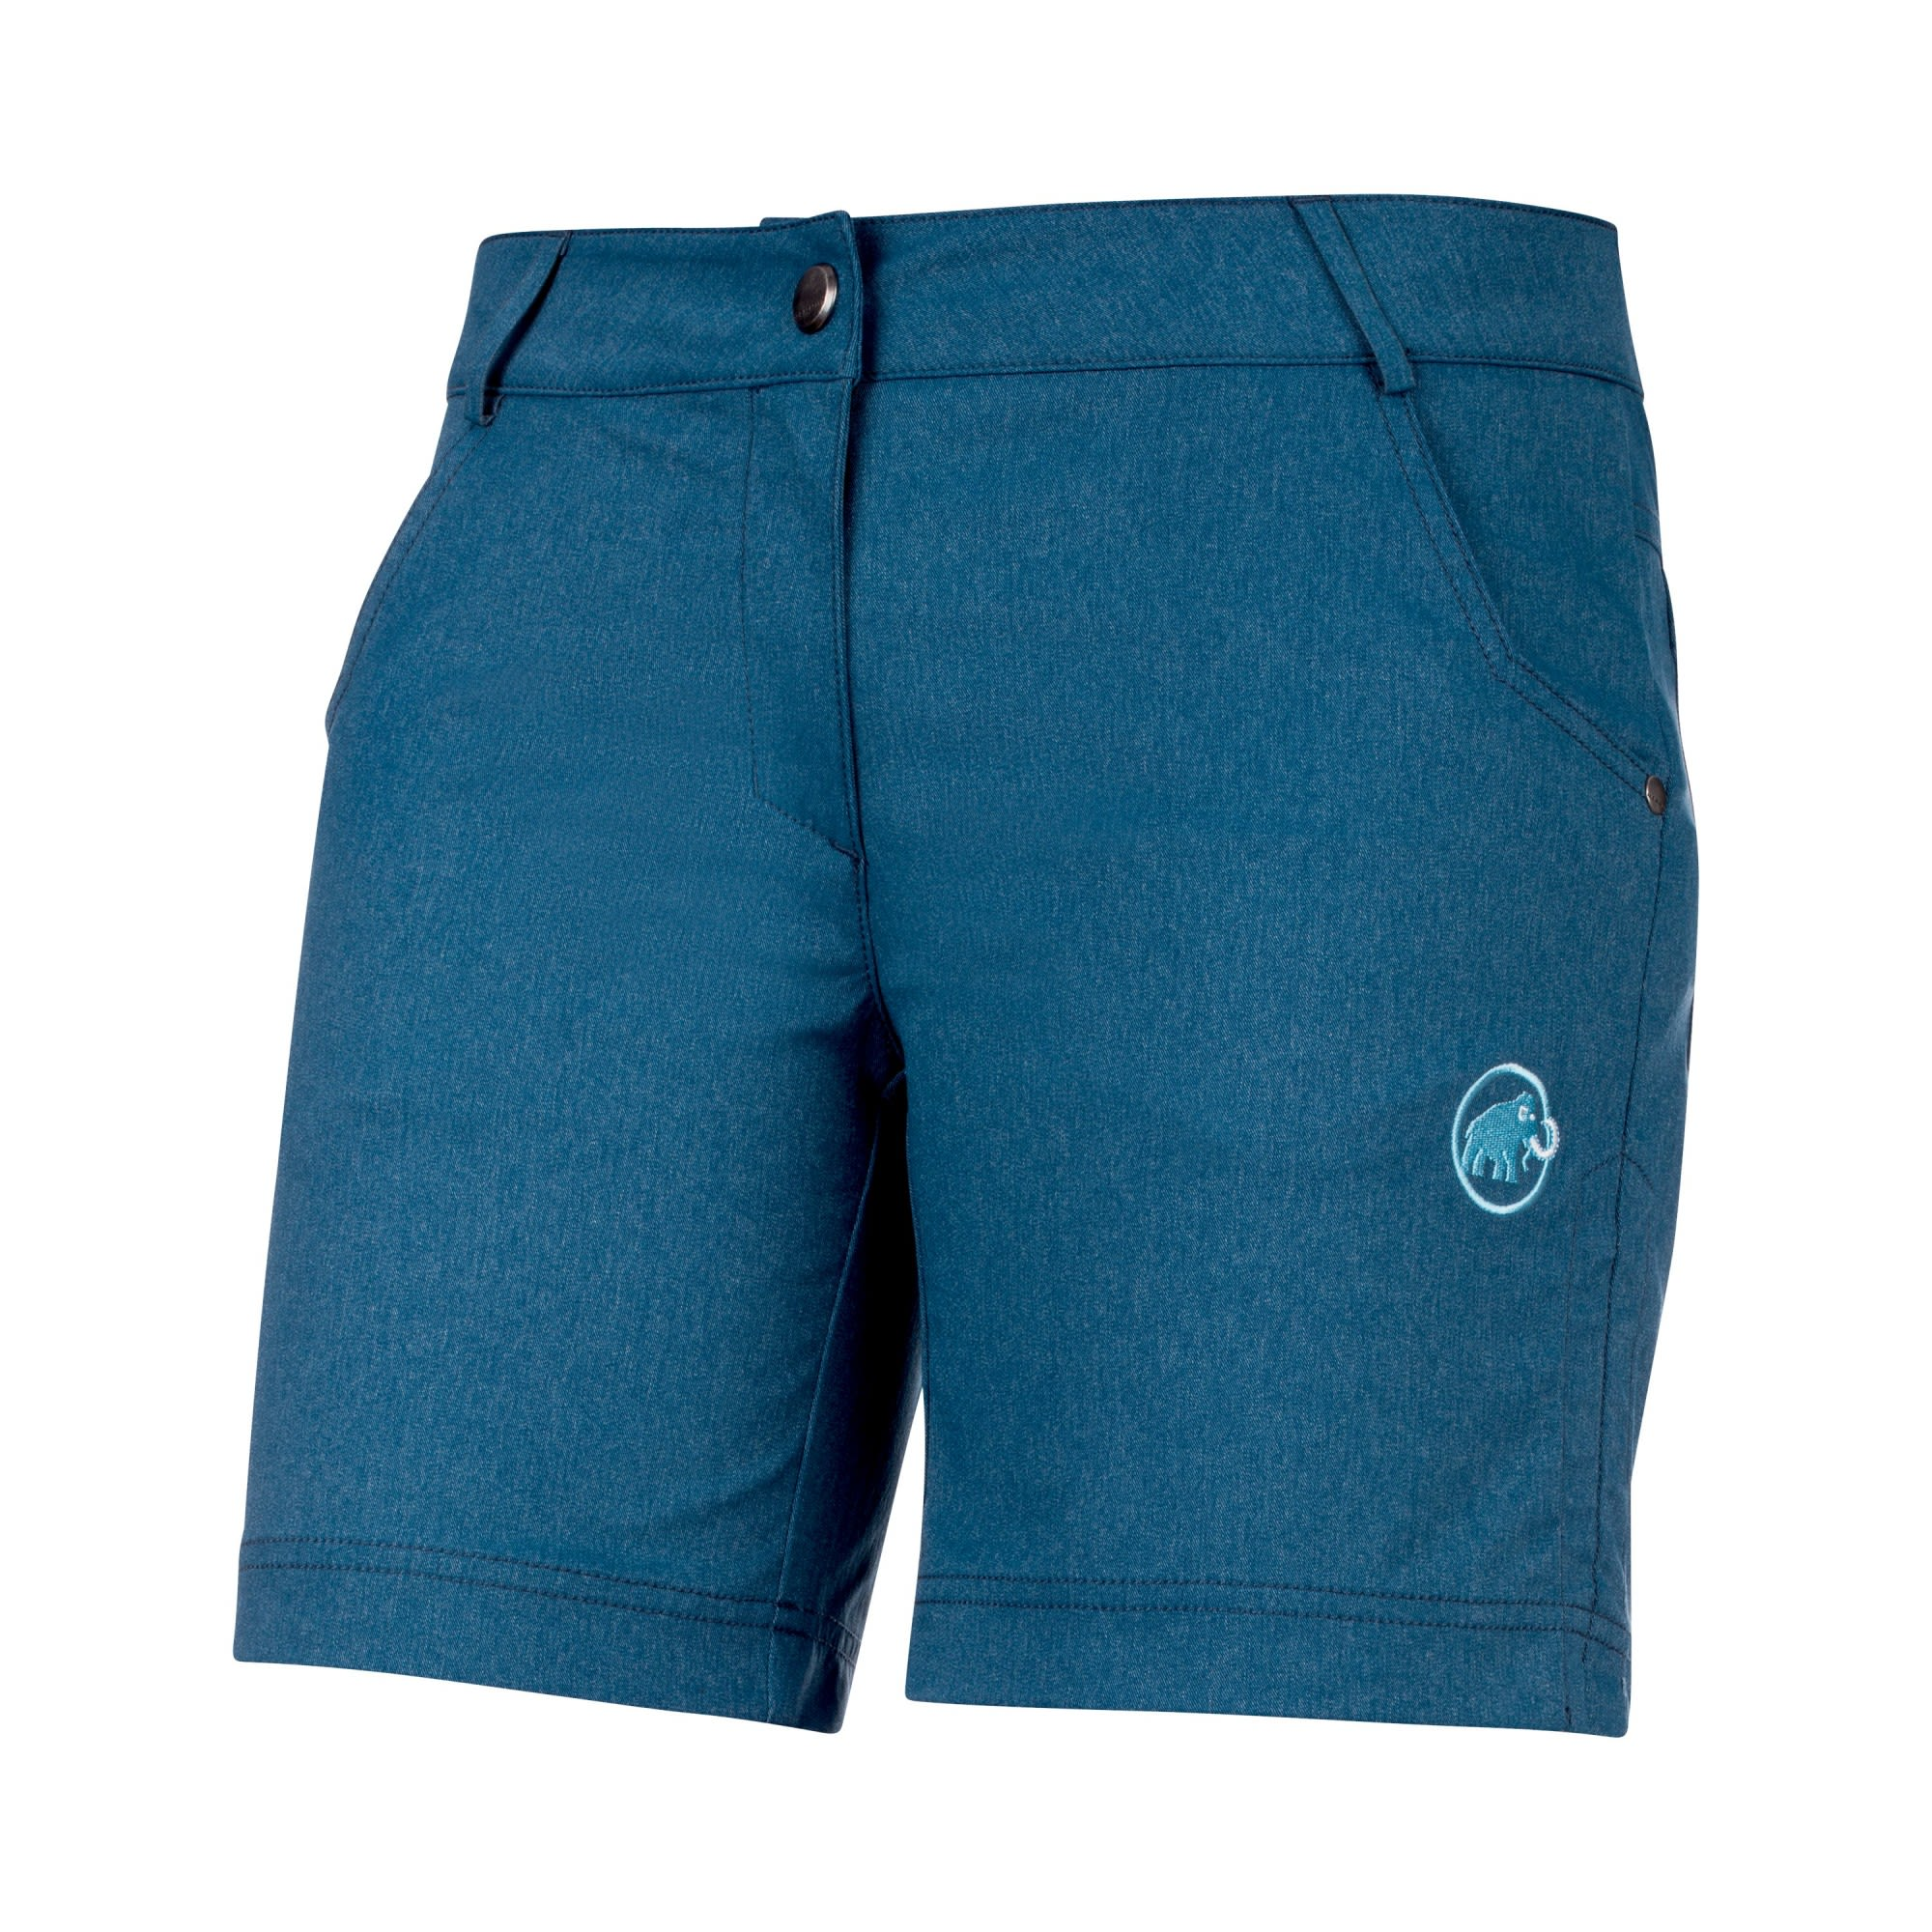 Mammut Massone Shorts Blau, Female Shorts, 42